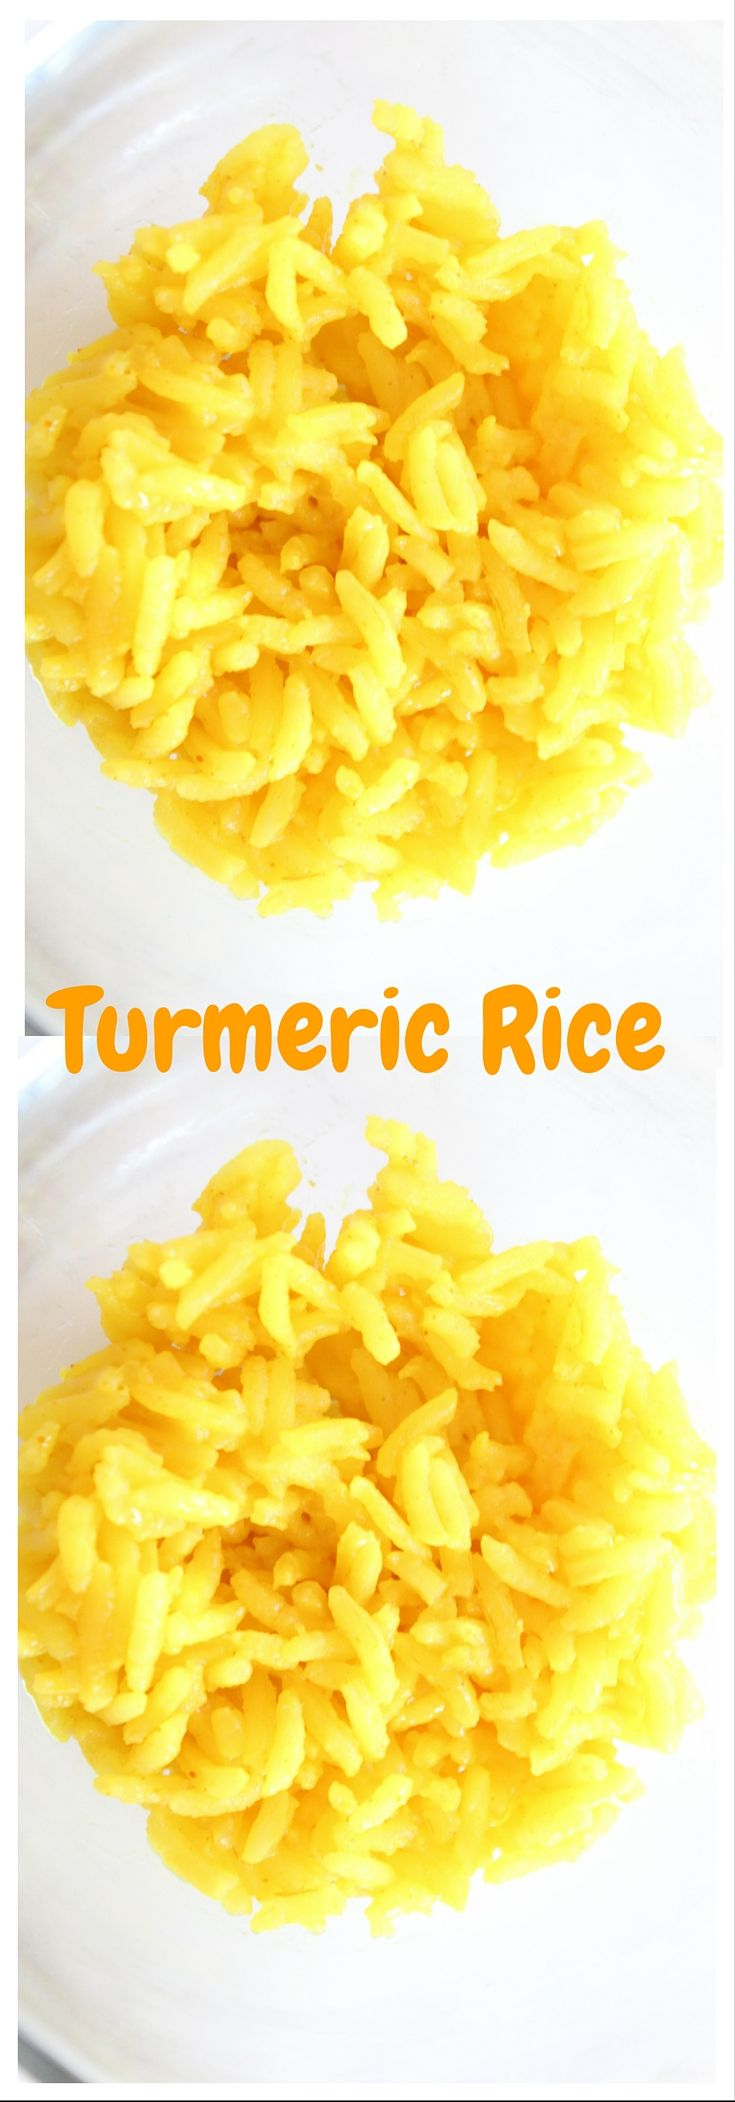 This turmeric rice recipe has minimal ingredients and is ready to eat in 20 minutes or less. Easy turmeric recipe to try. Click here for this recipe or pin to save for later.